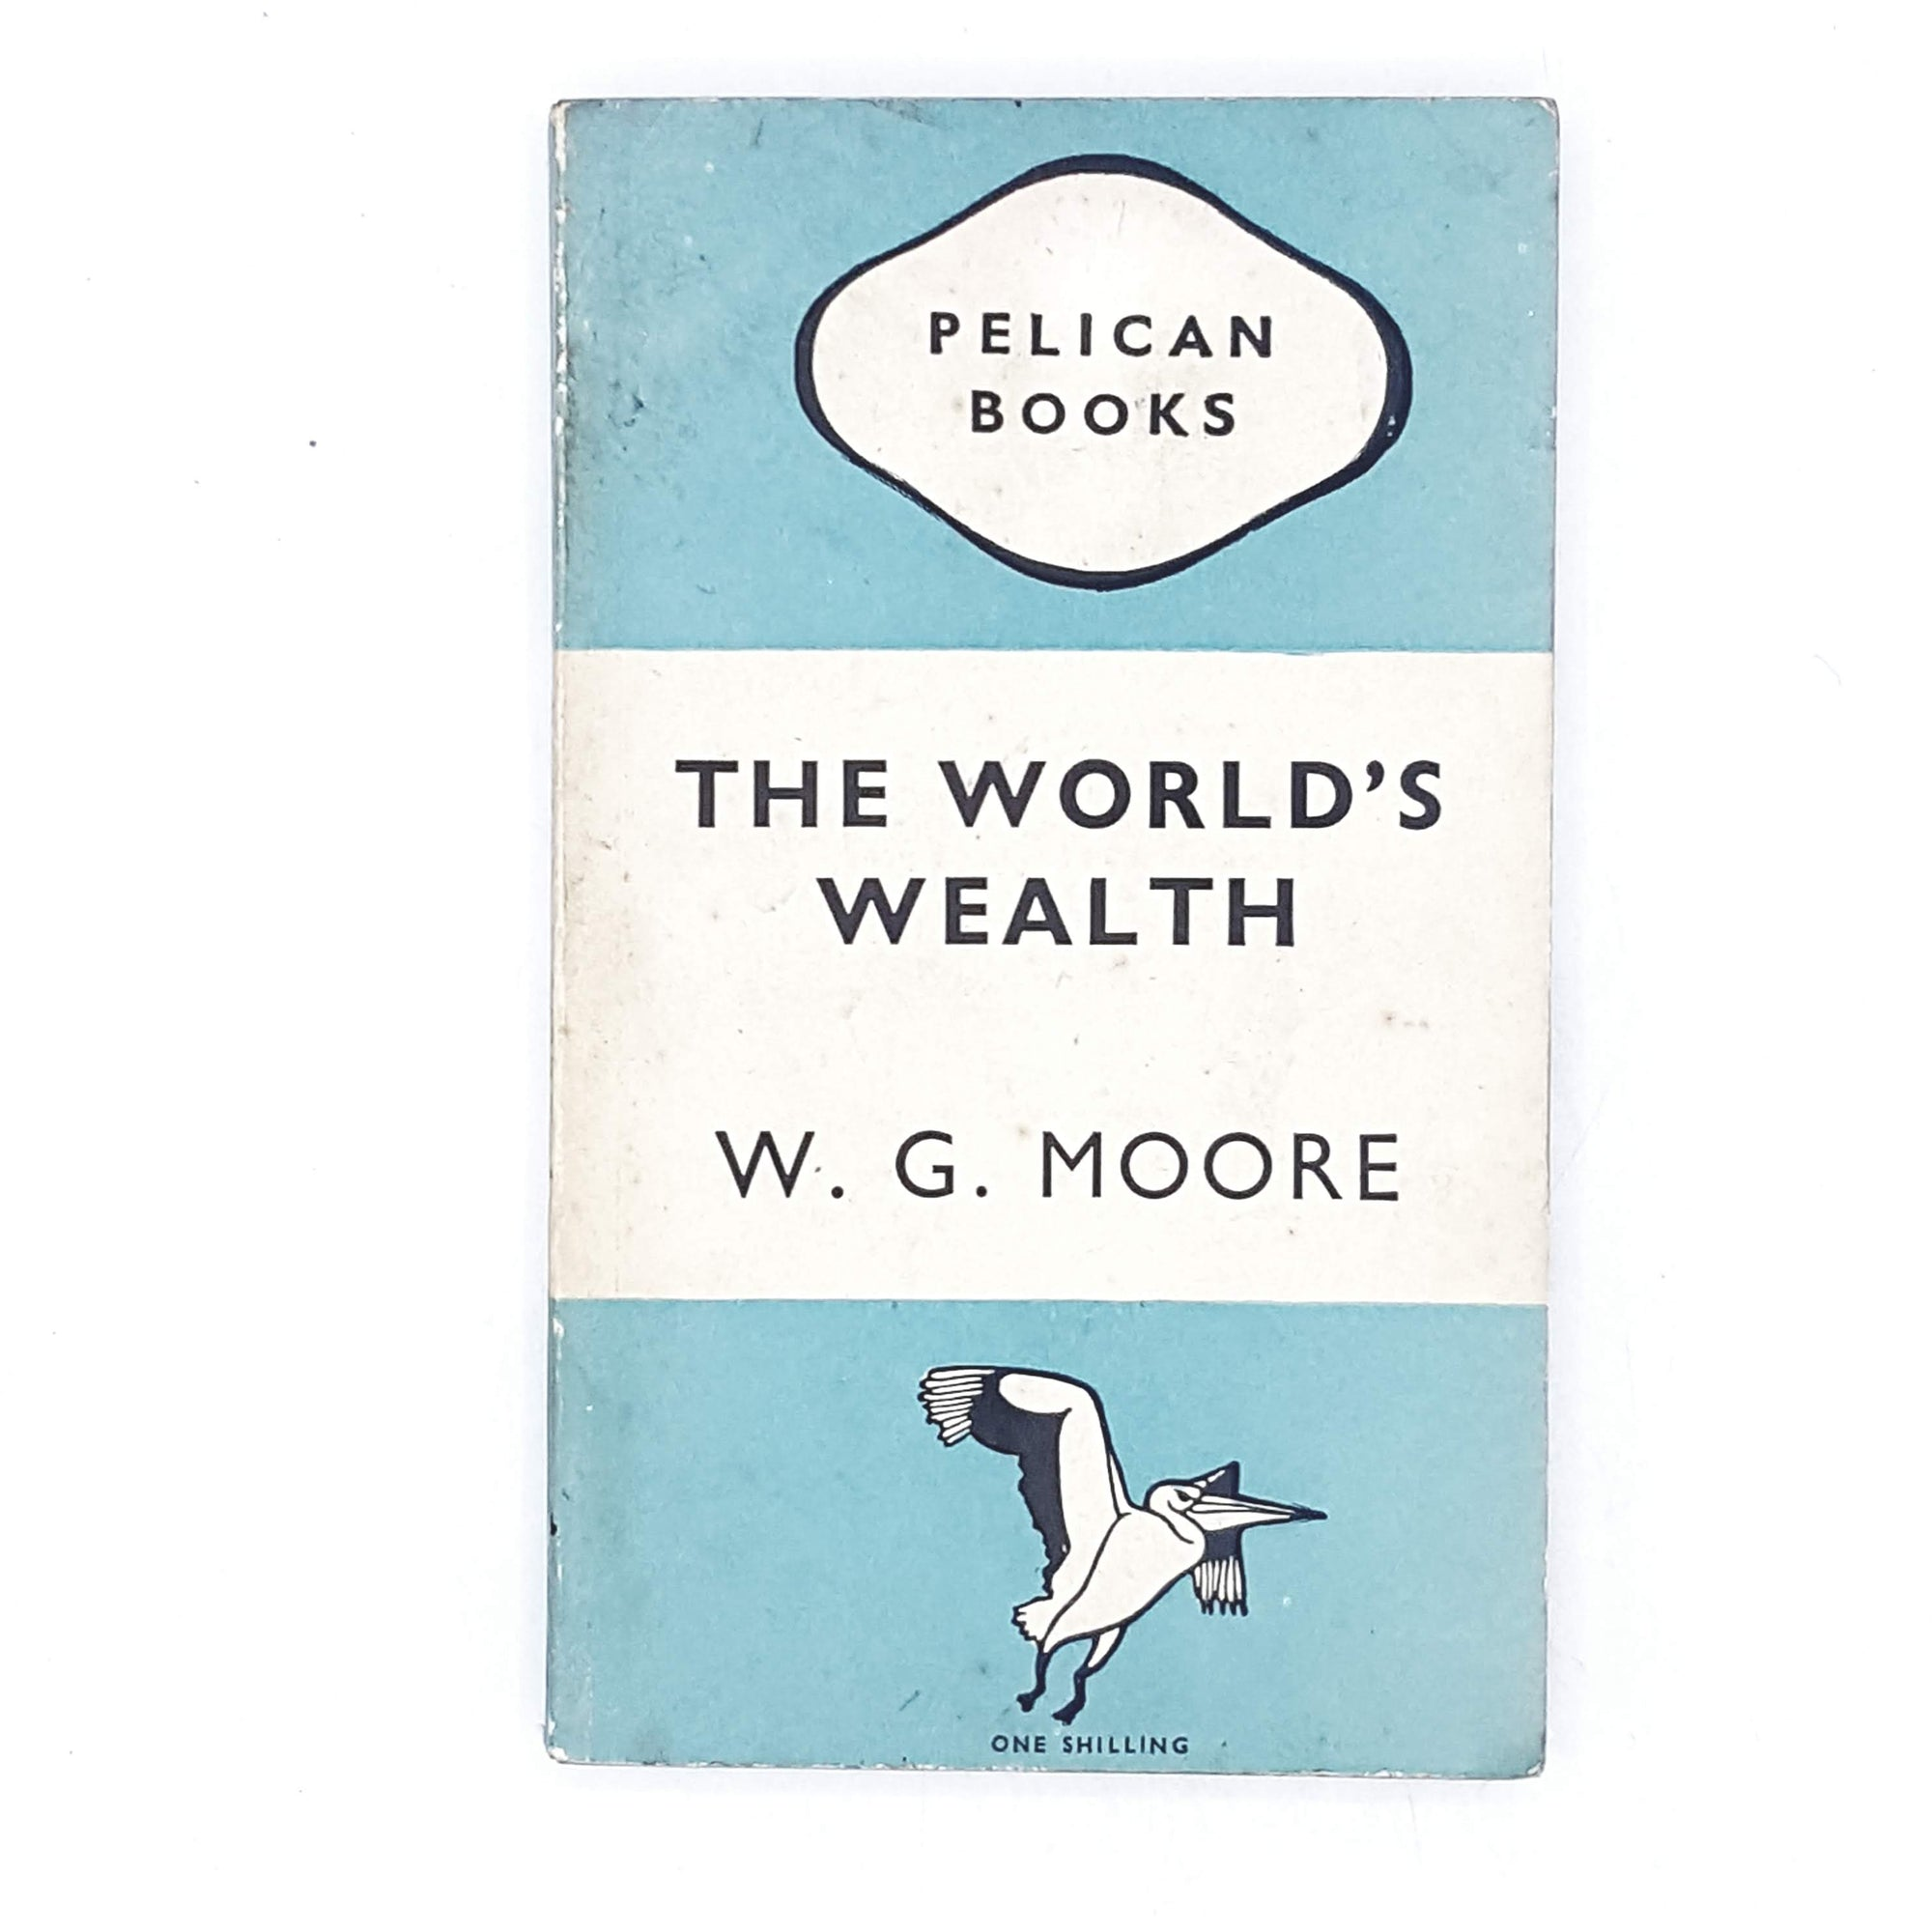 The World's Wealth by W. G. Moore 1947